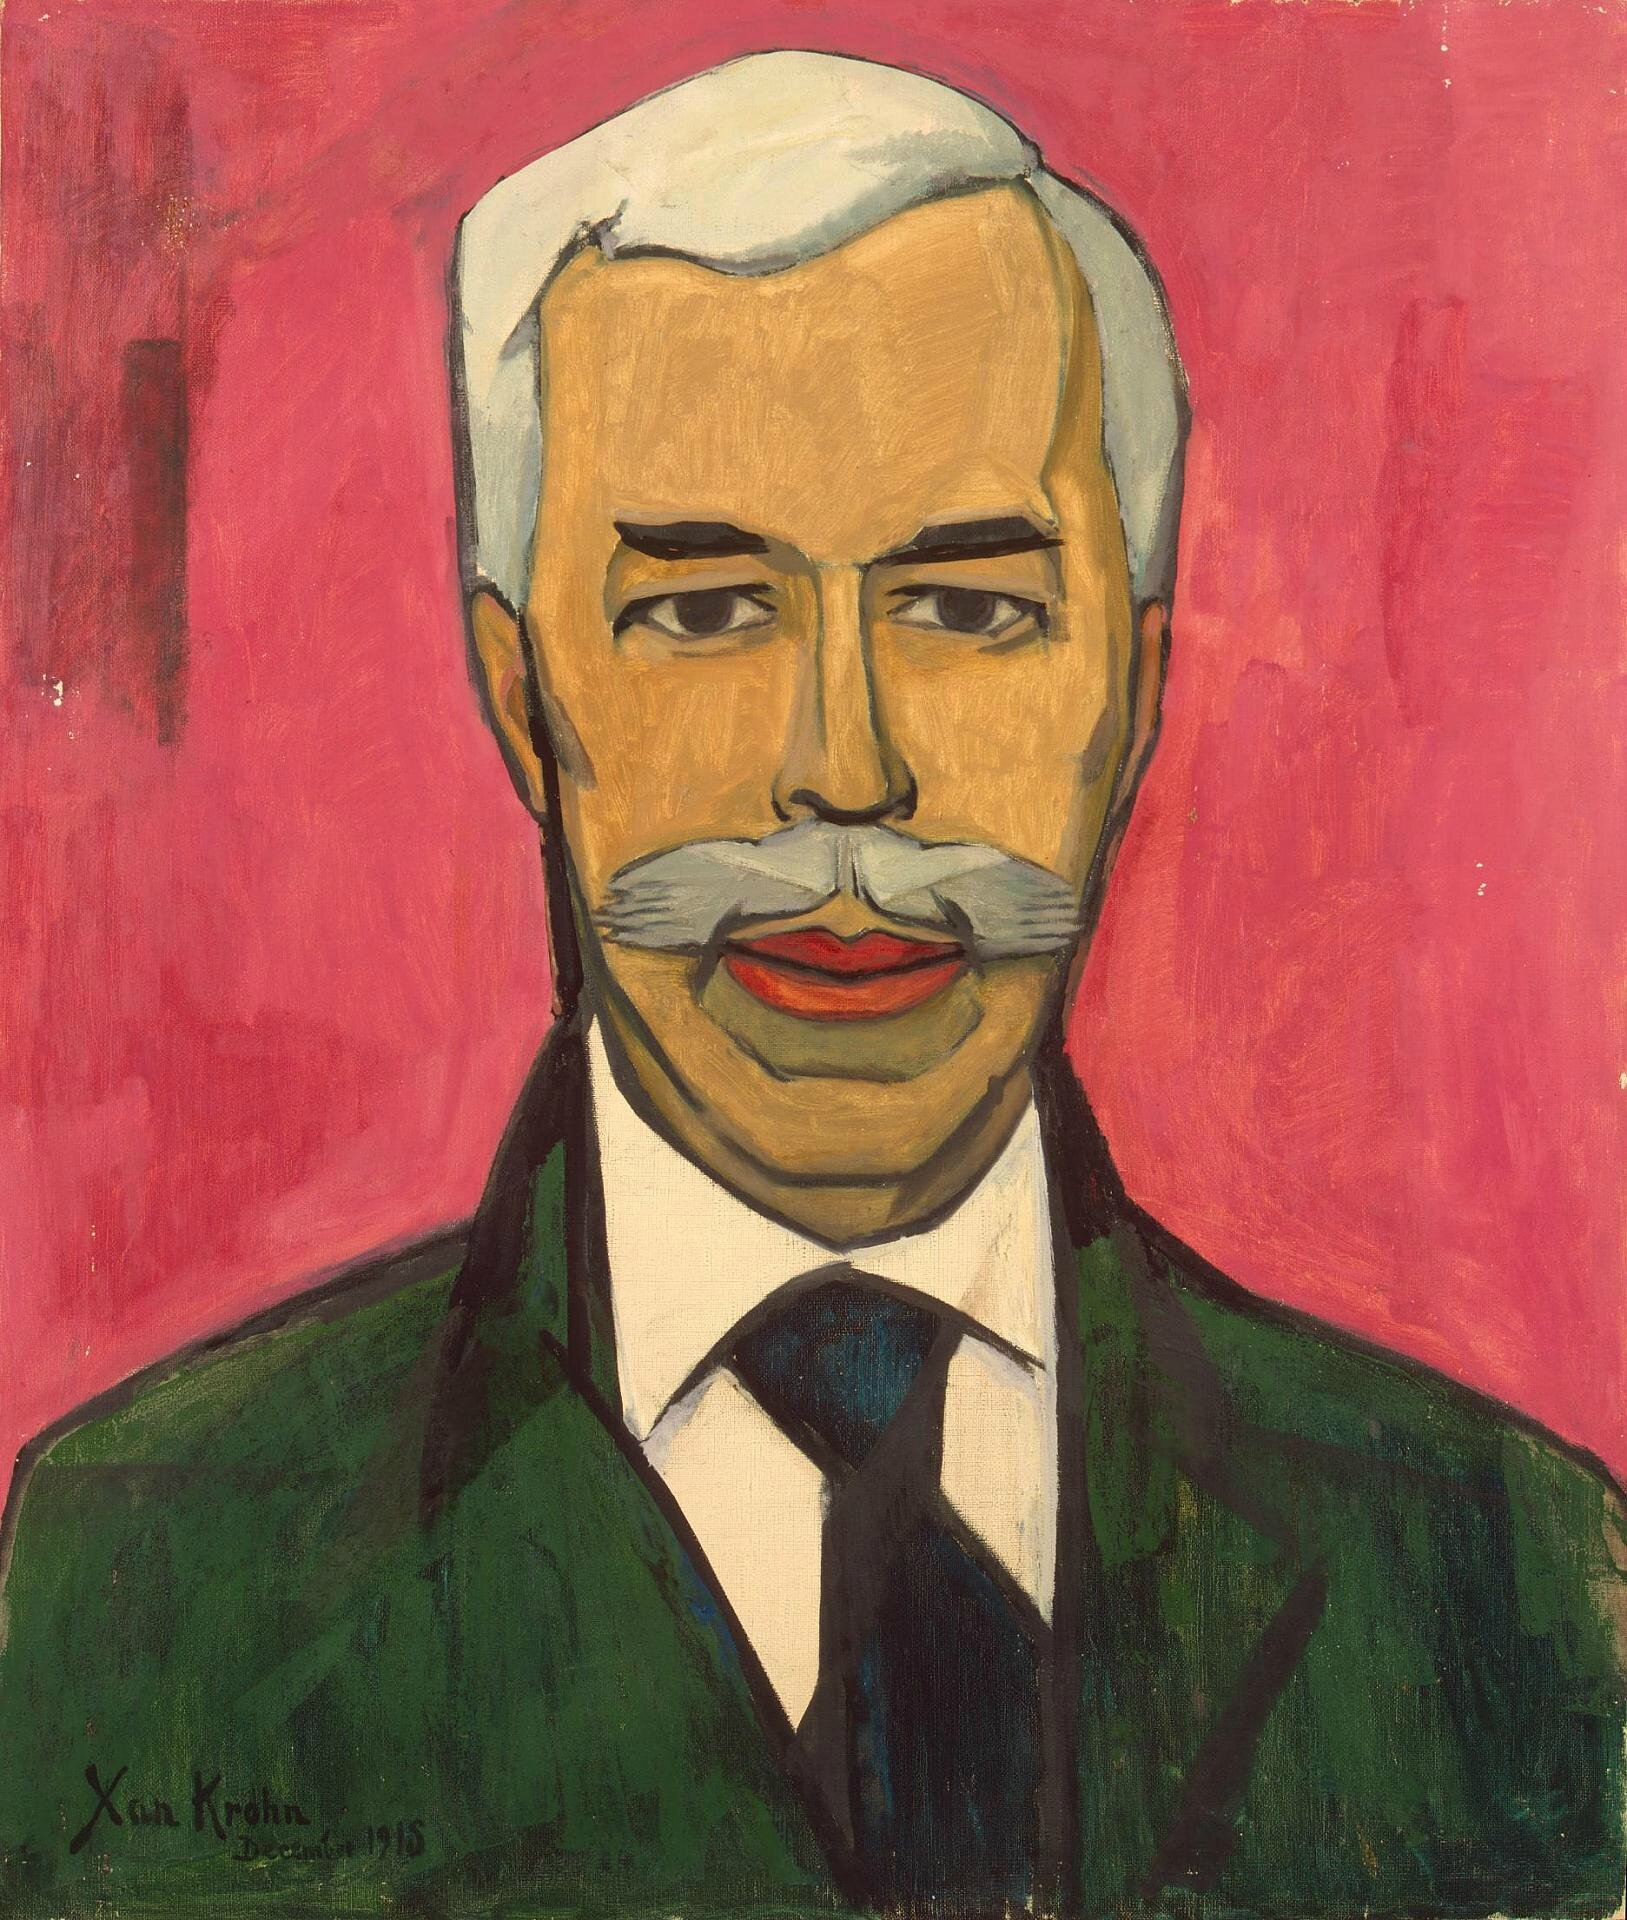 Exhibition pays tribute to one of the greatest art patrons of the early 20th century, Sergei Shchukin